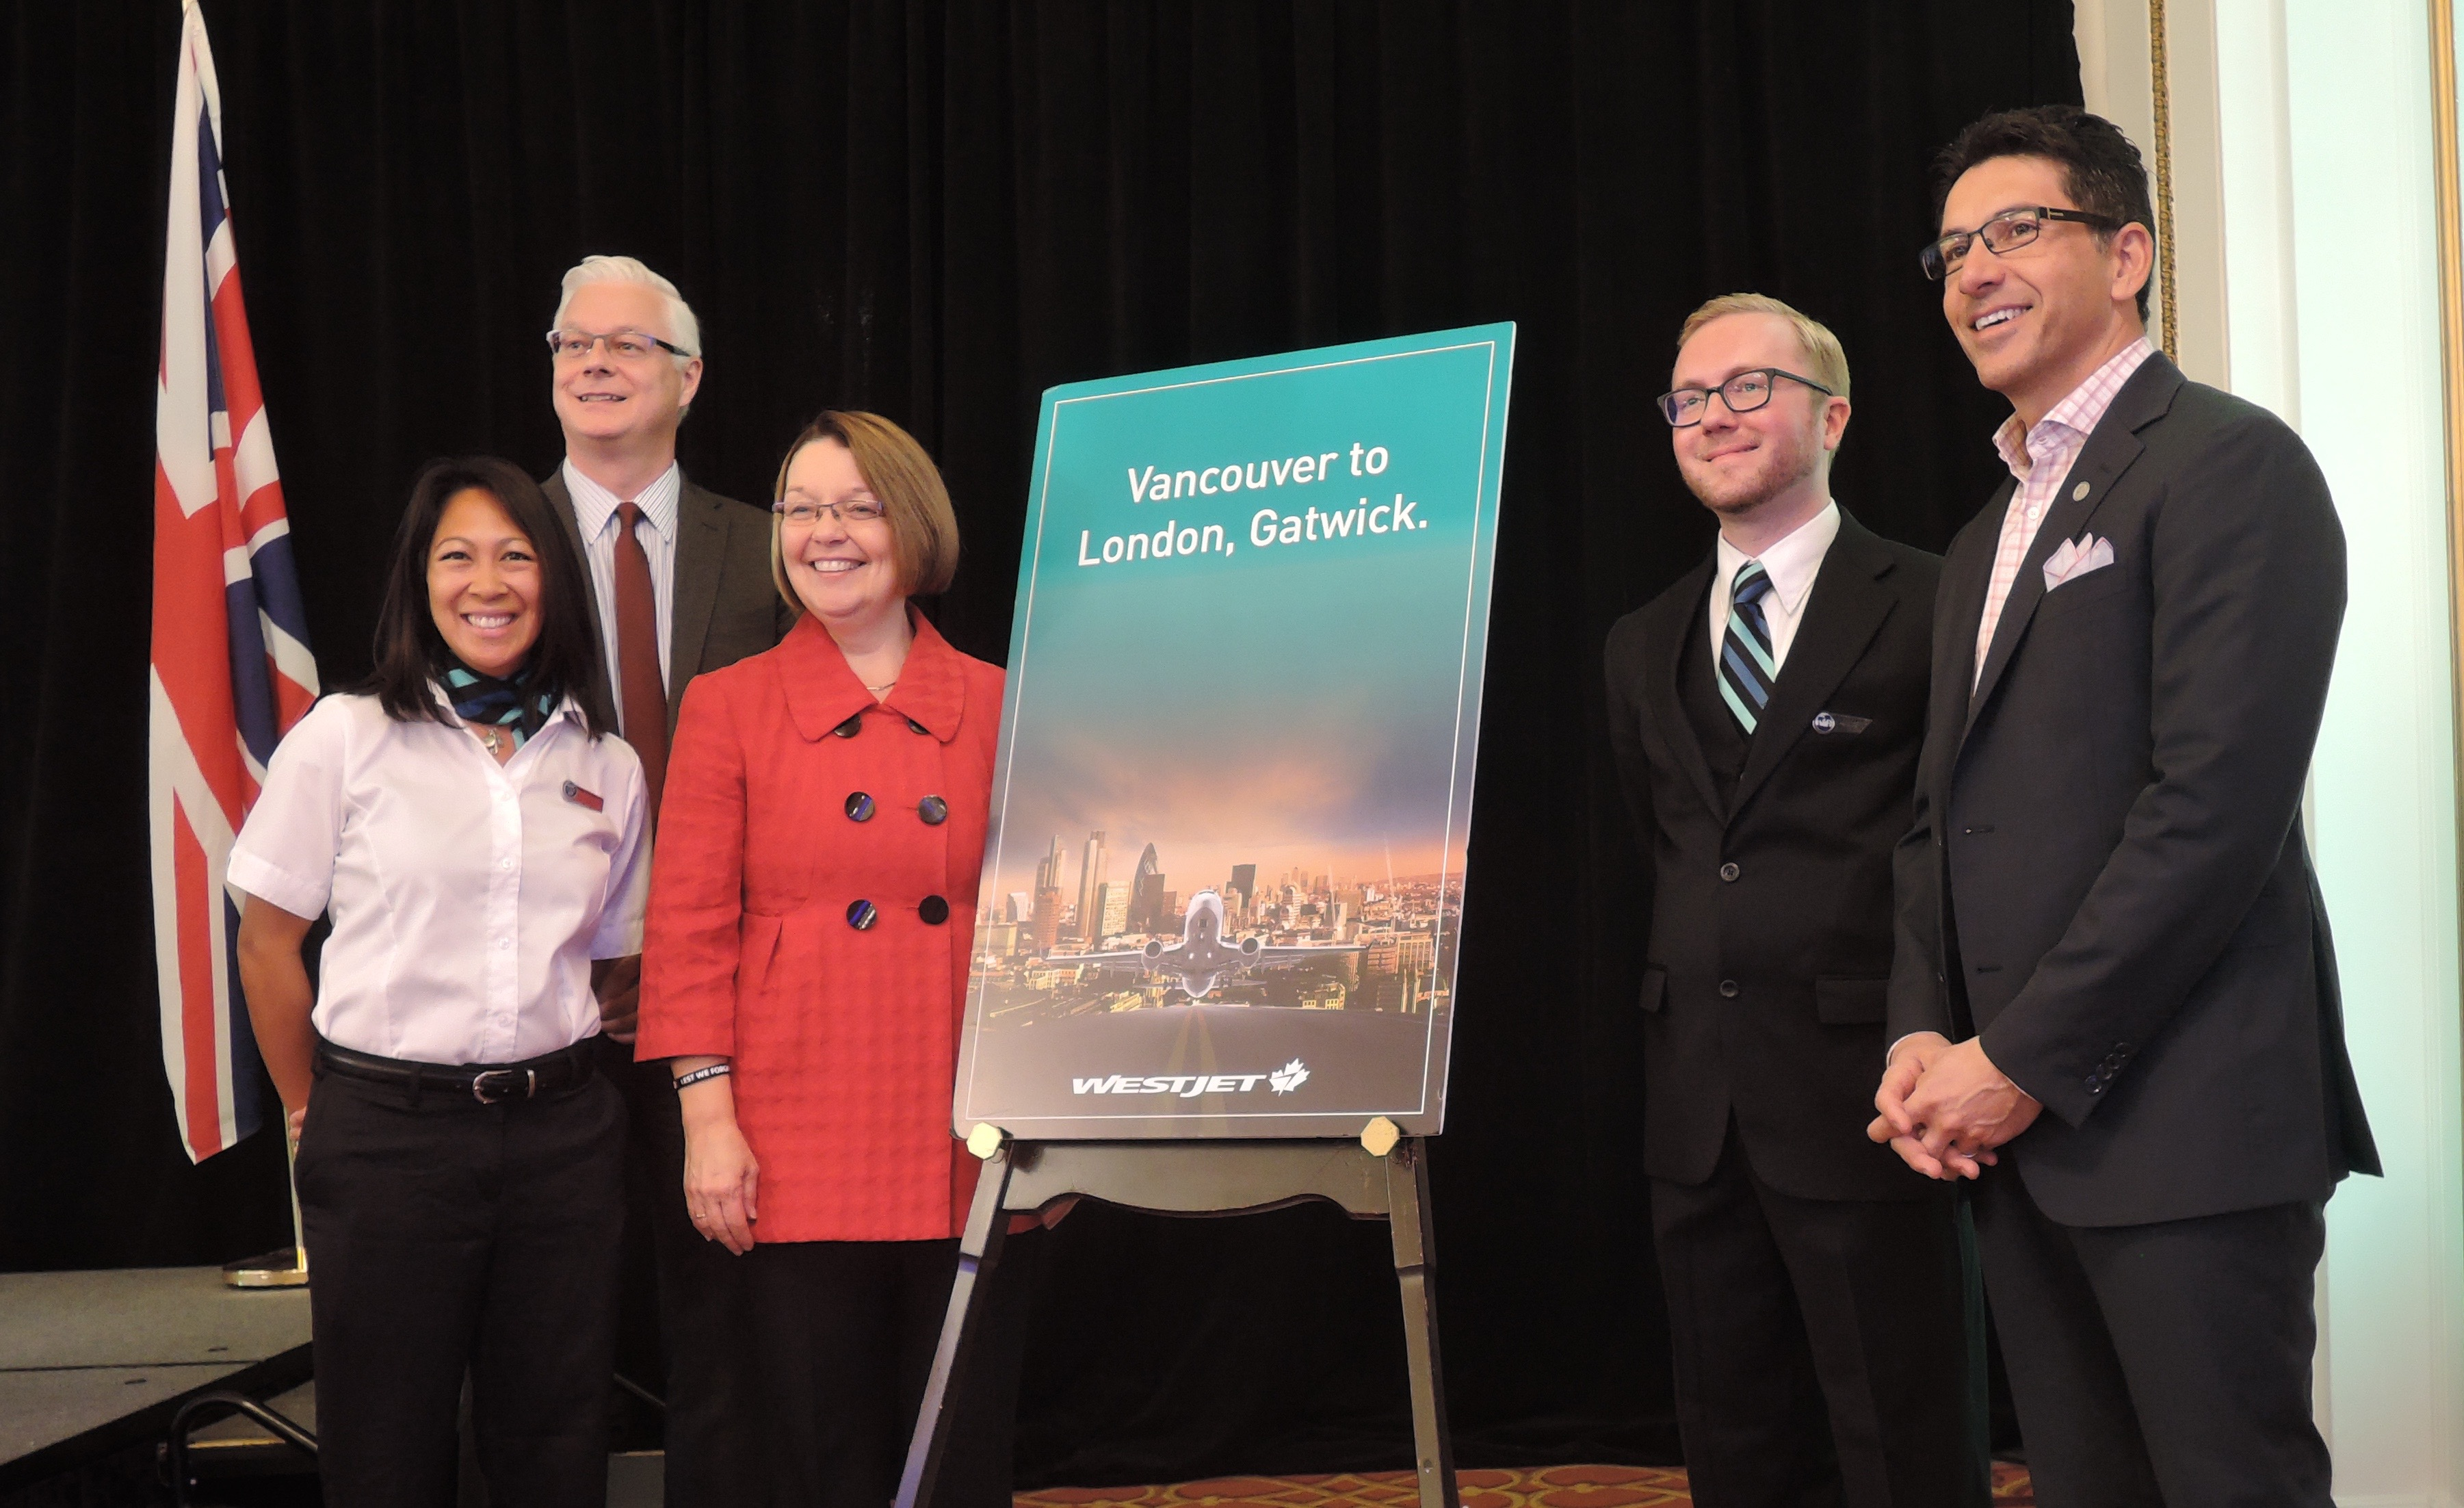 WestJet launches London service at YVR